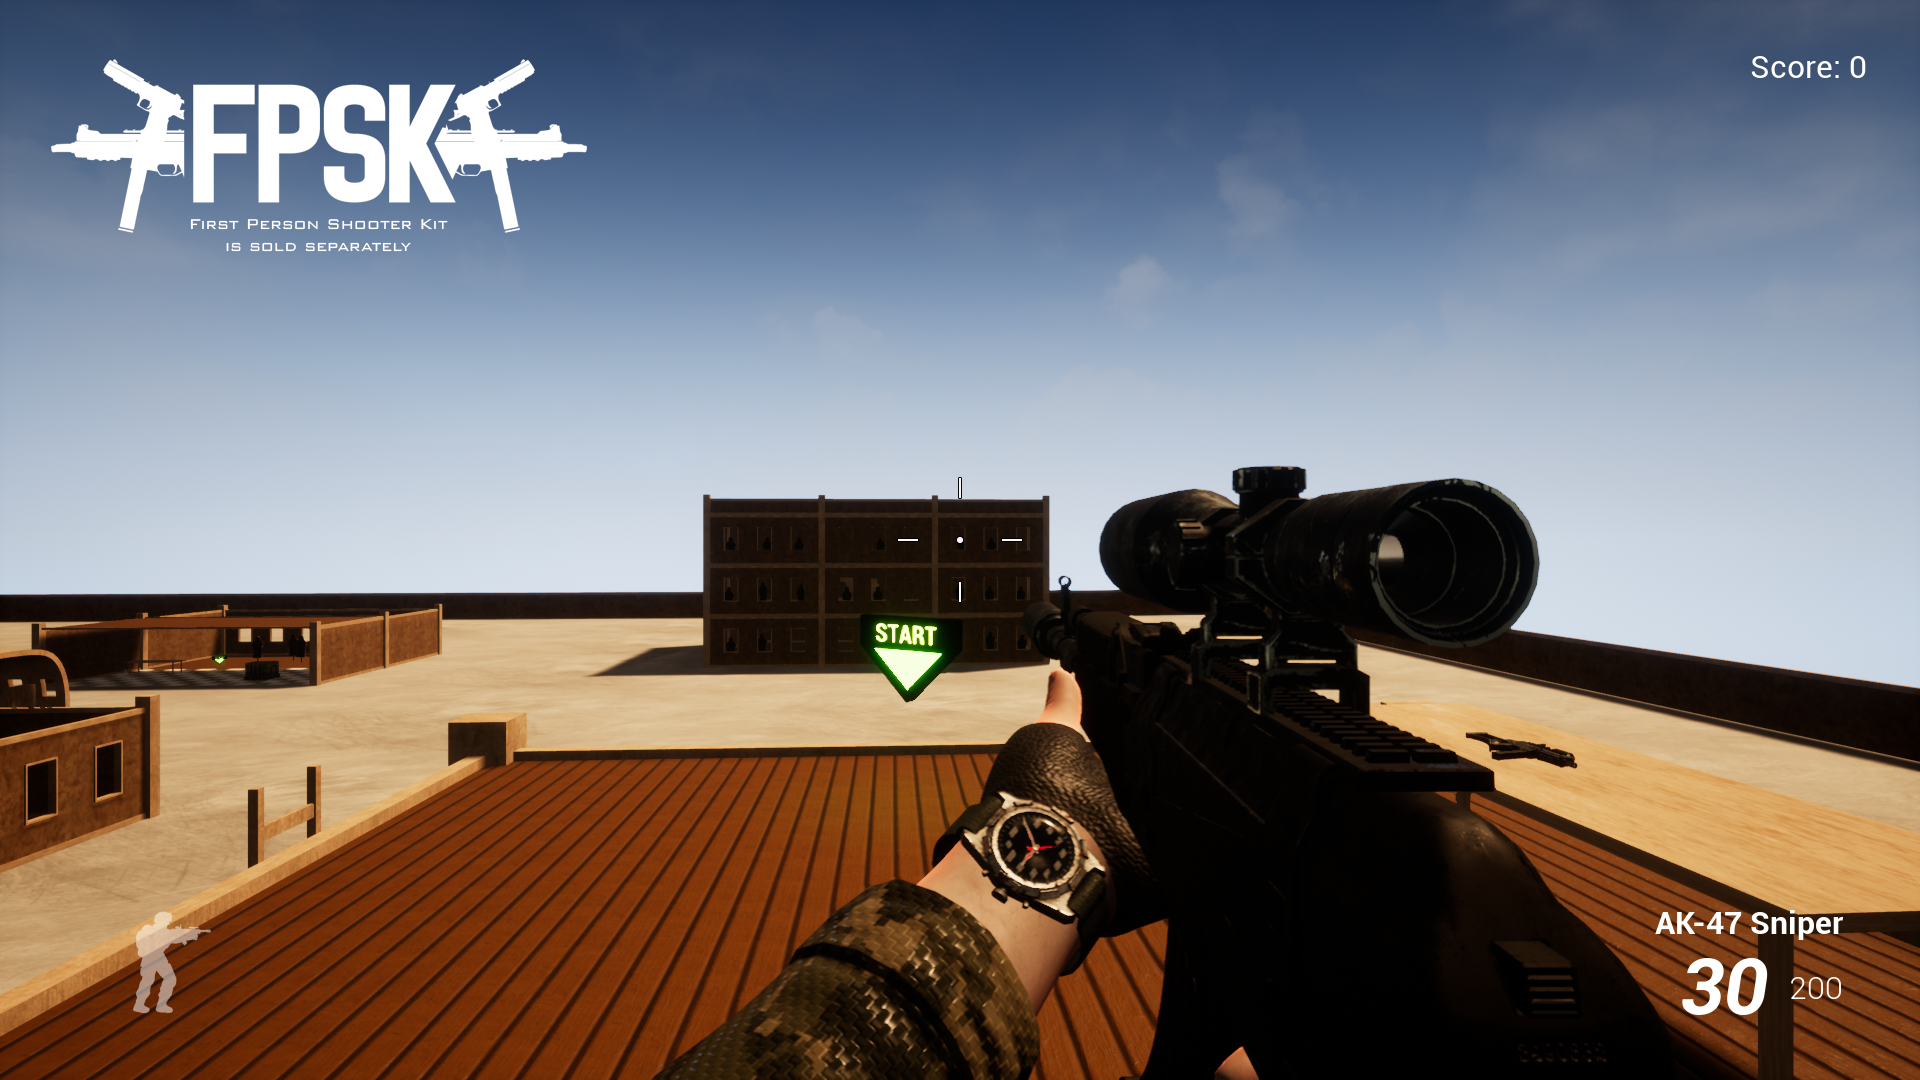 AK-47 (FPSK Ready) by Kelint in Weapons - UE4 Marketplace